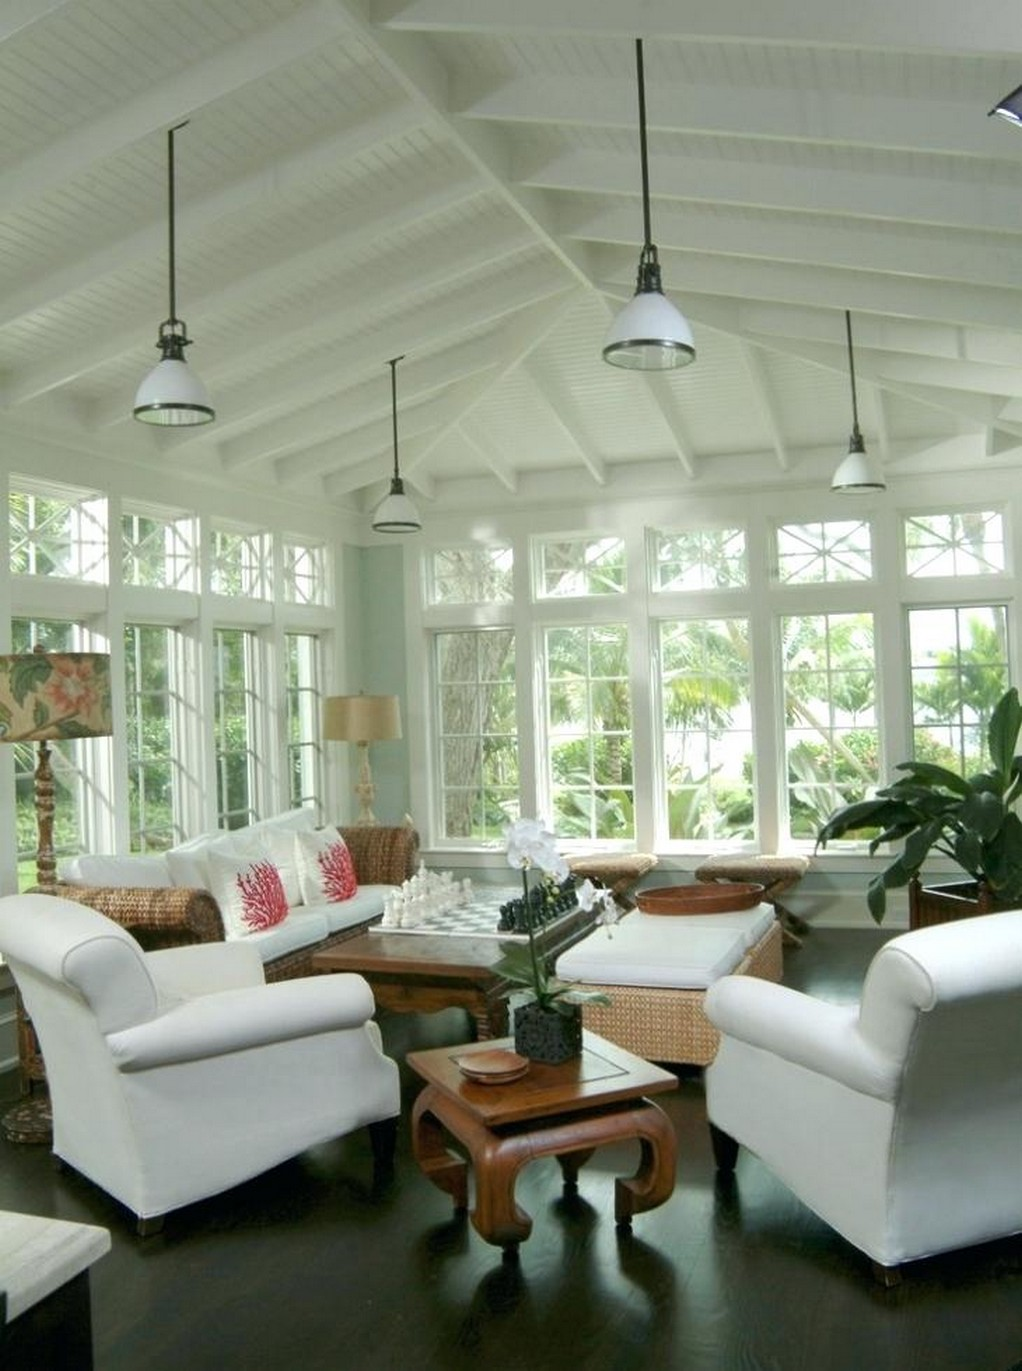 Wonderful Architecture Idea of Sun Room - Must See!!